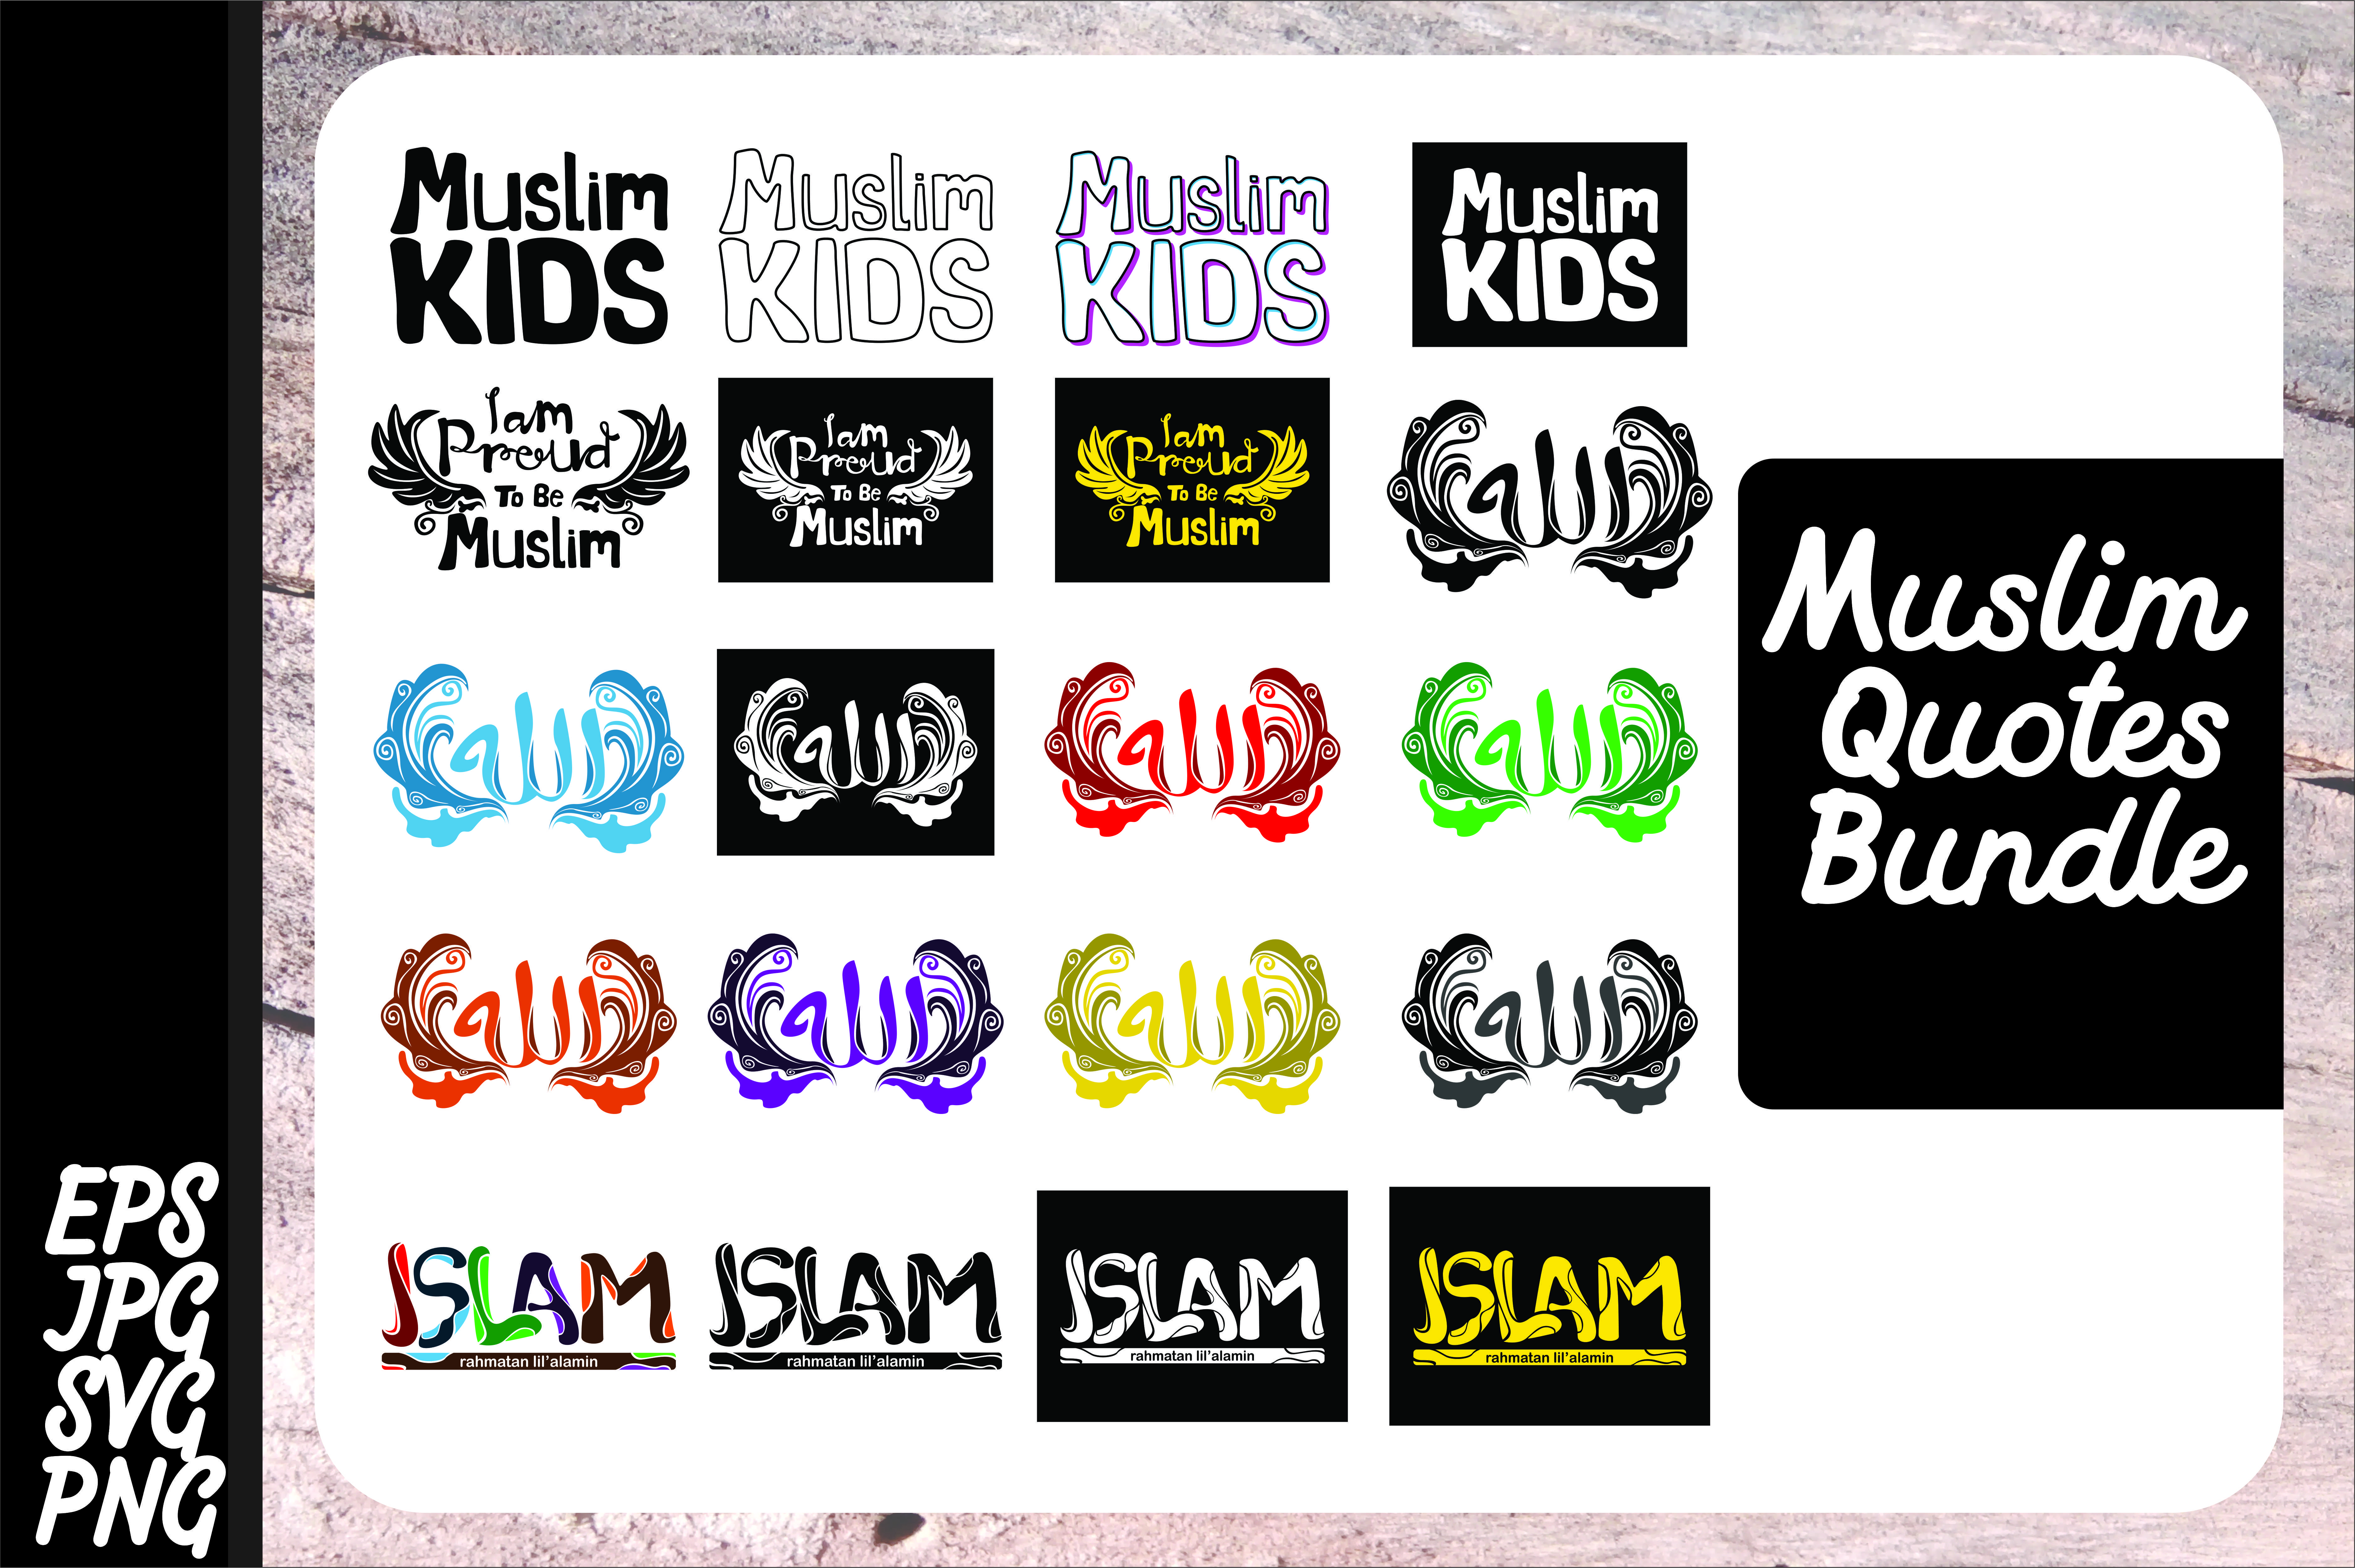 Download Free T Shirt Muslim Islam Quote Bundle Graphic By Arief Sapta Adjie for Cricut Explore, Silhouette and other cutting machines.